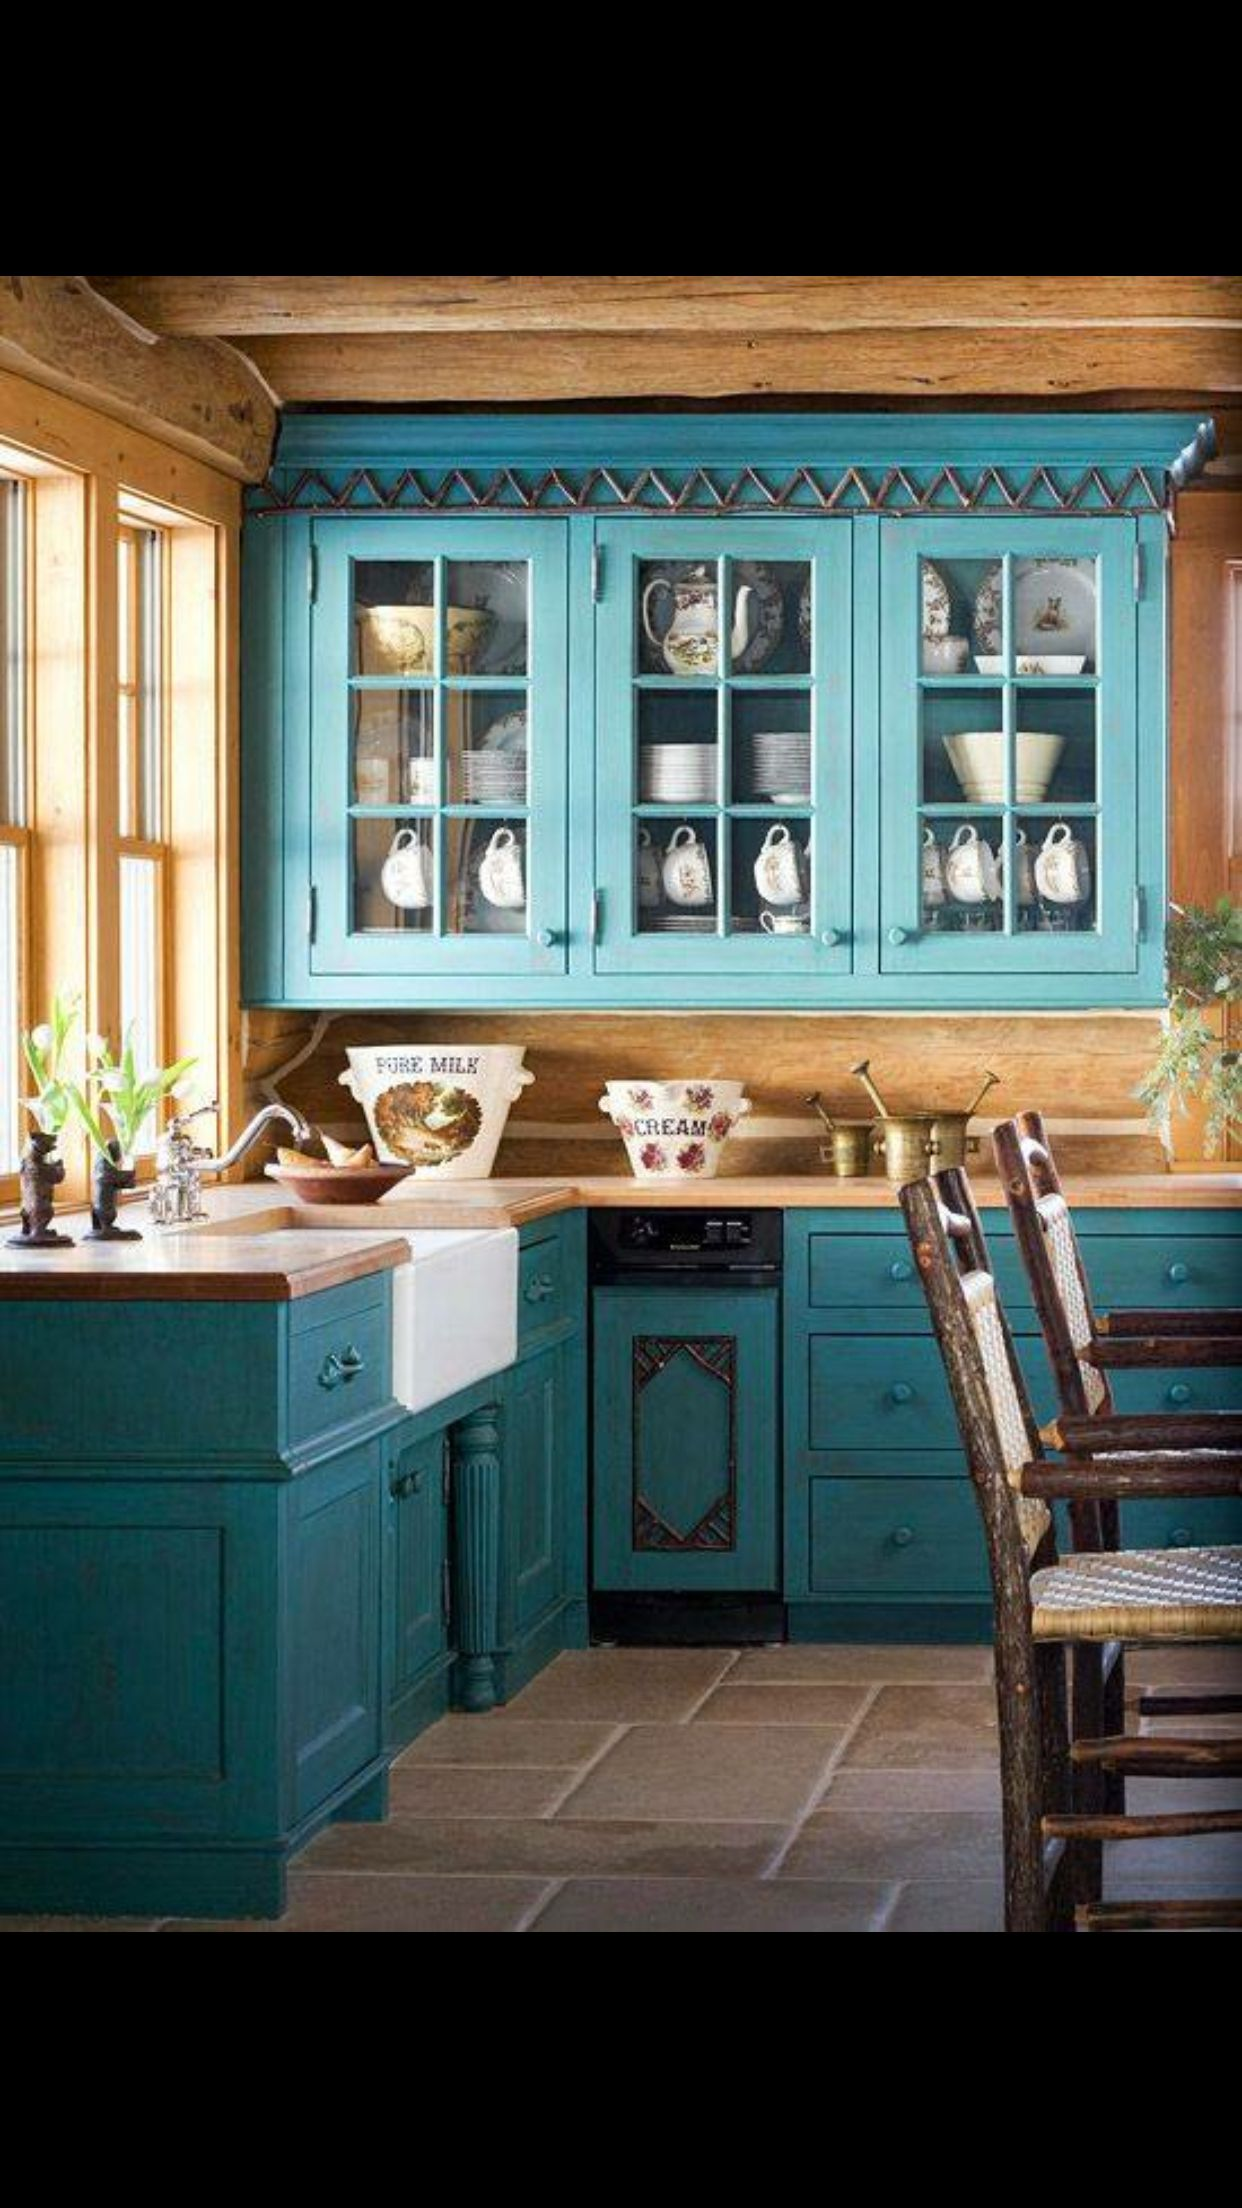 Pin by Katie on Teal Cottage | Pinterest | Kitchens, Cabin and House